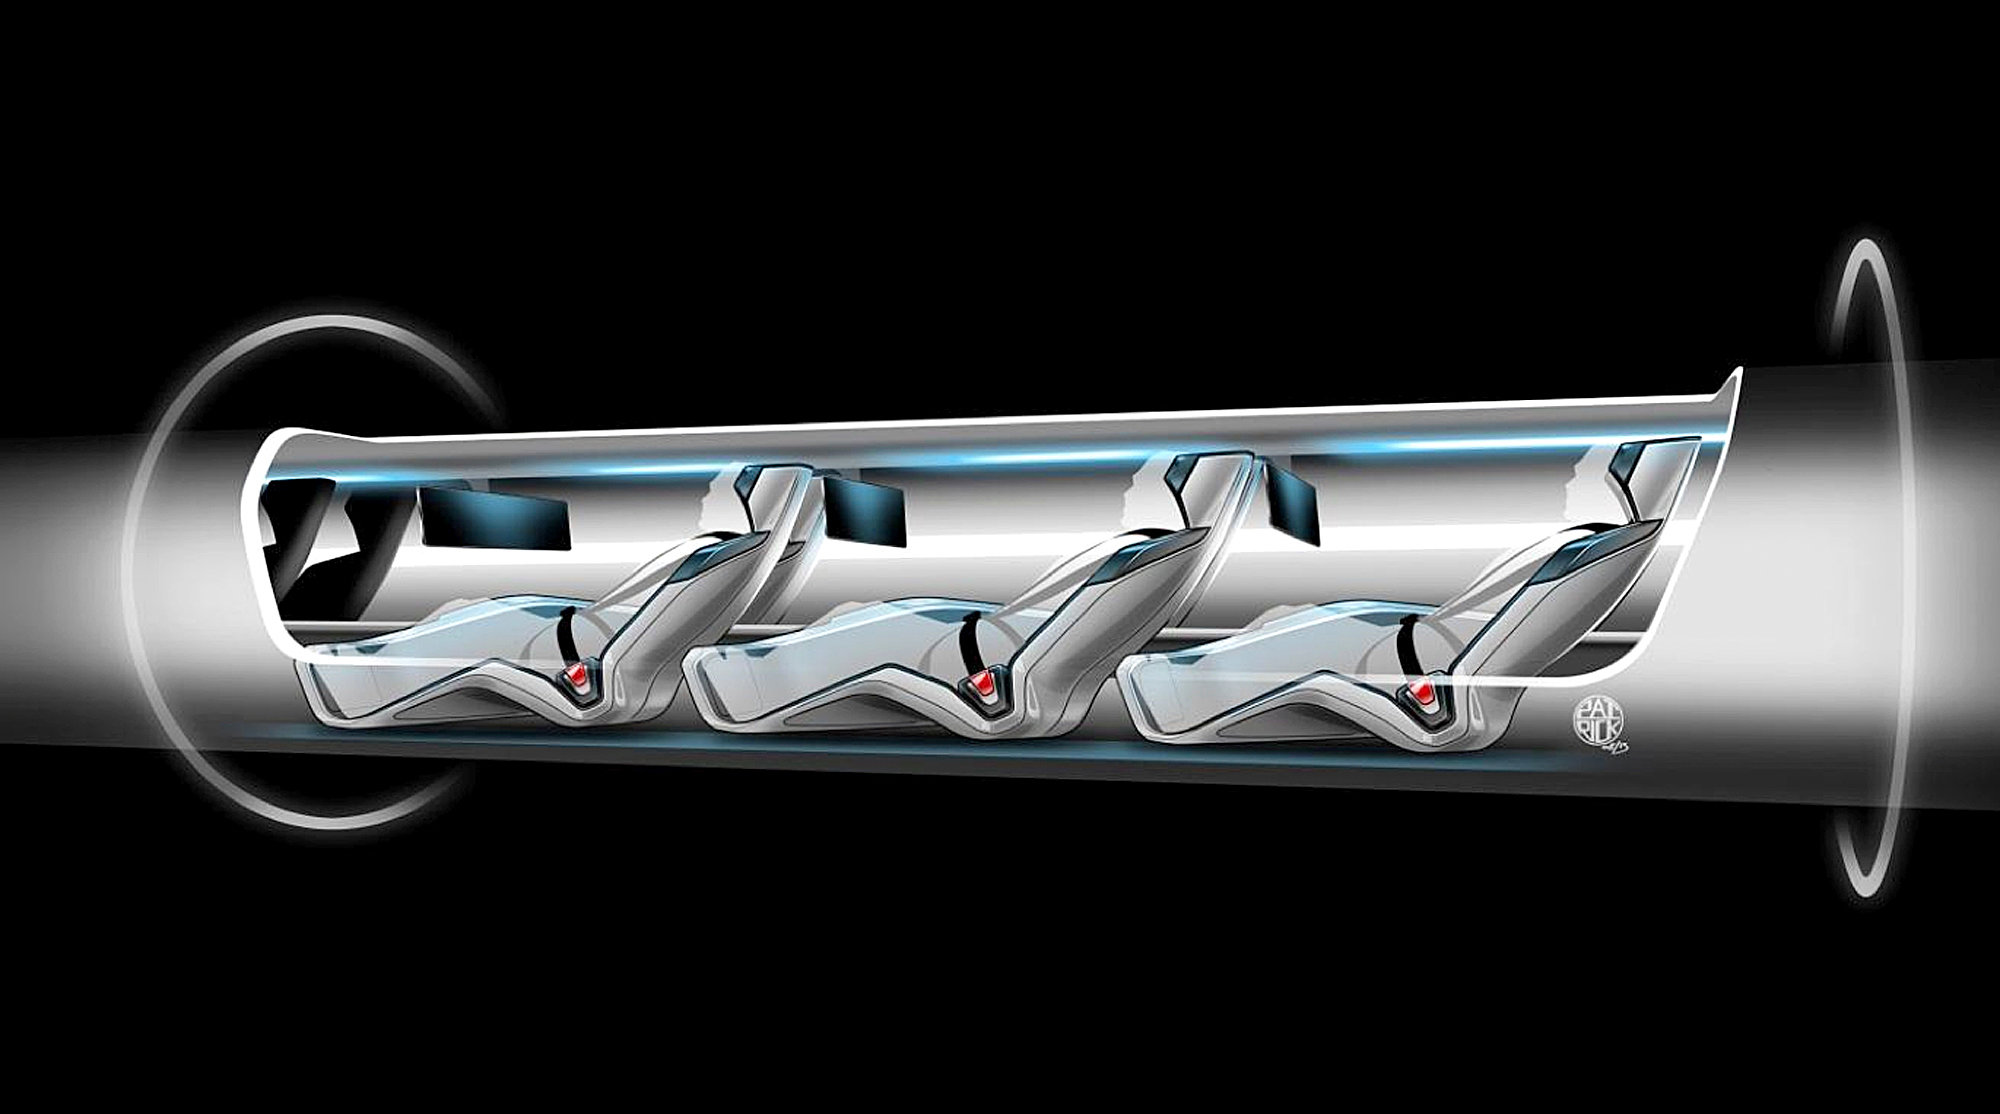 elon-musk-hyperloop-solidsmack-00002